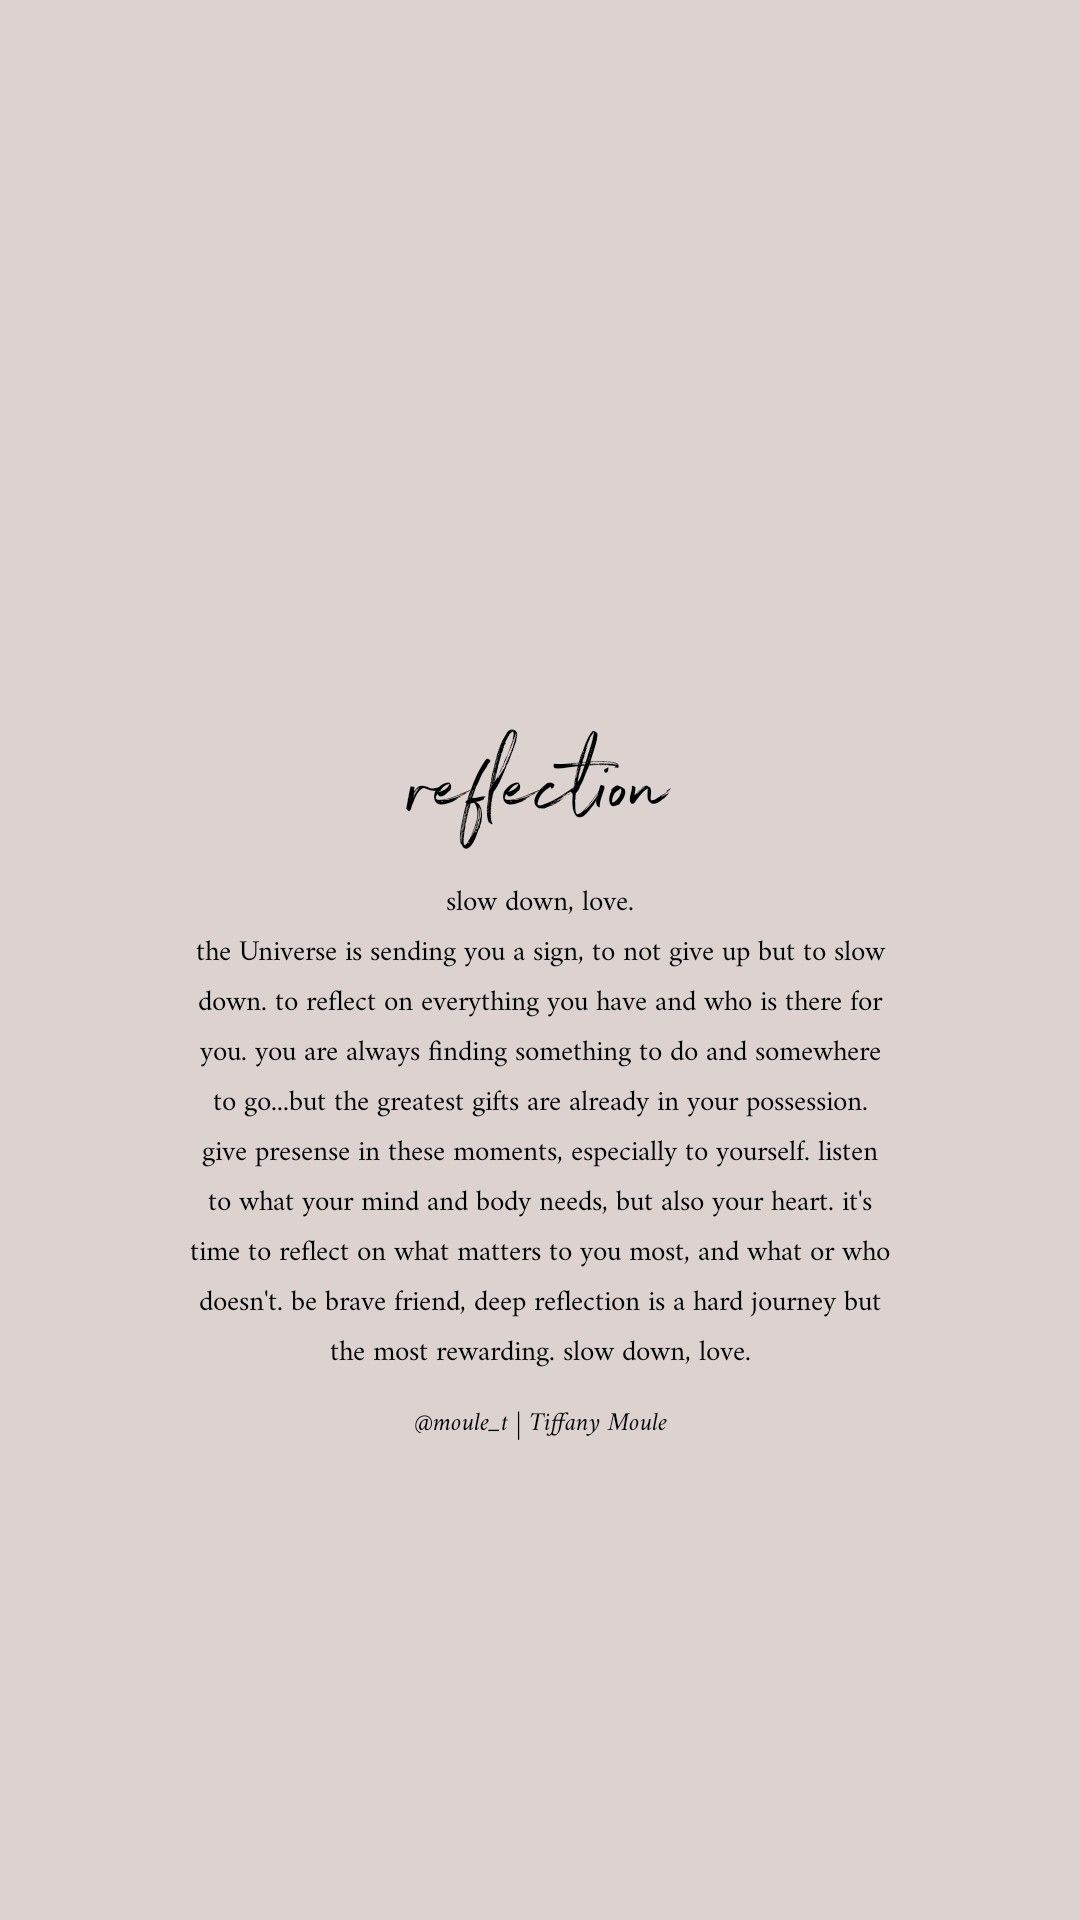 Reflect. Slow down, love. The Universe is sending you a gift of presence and time. #quote #reflect